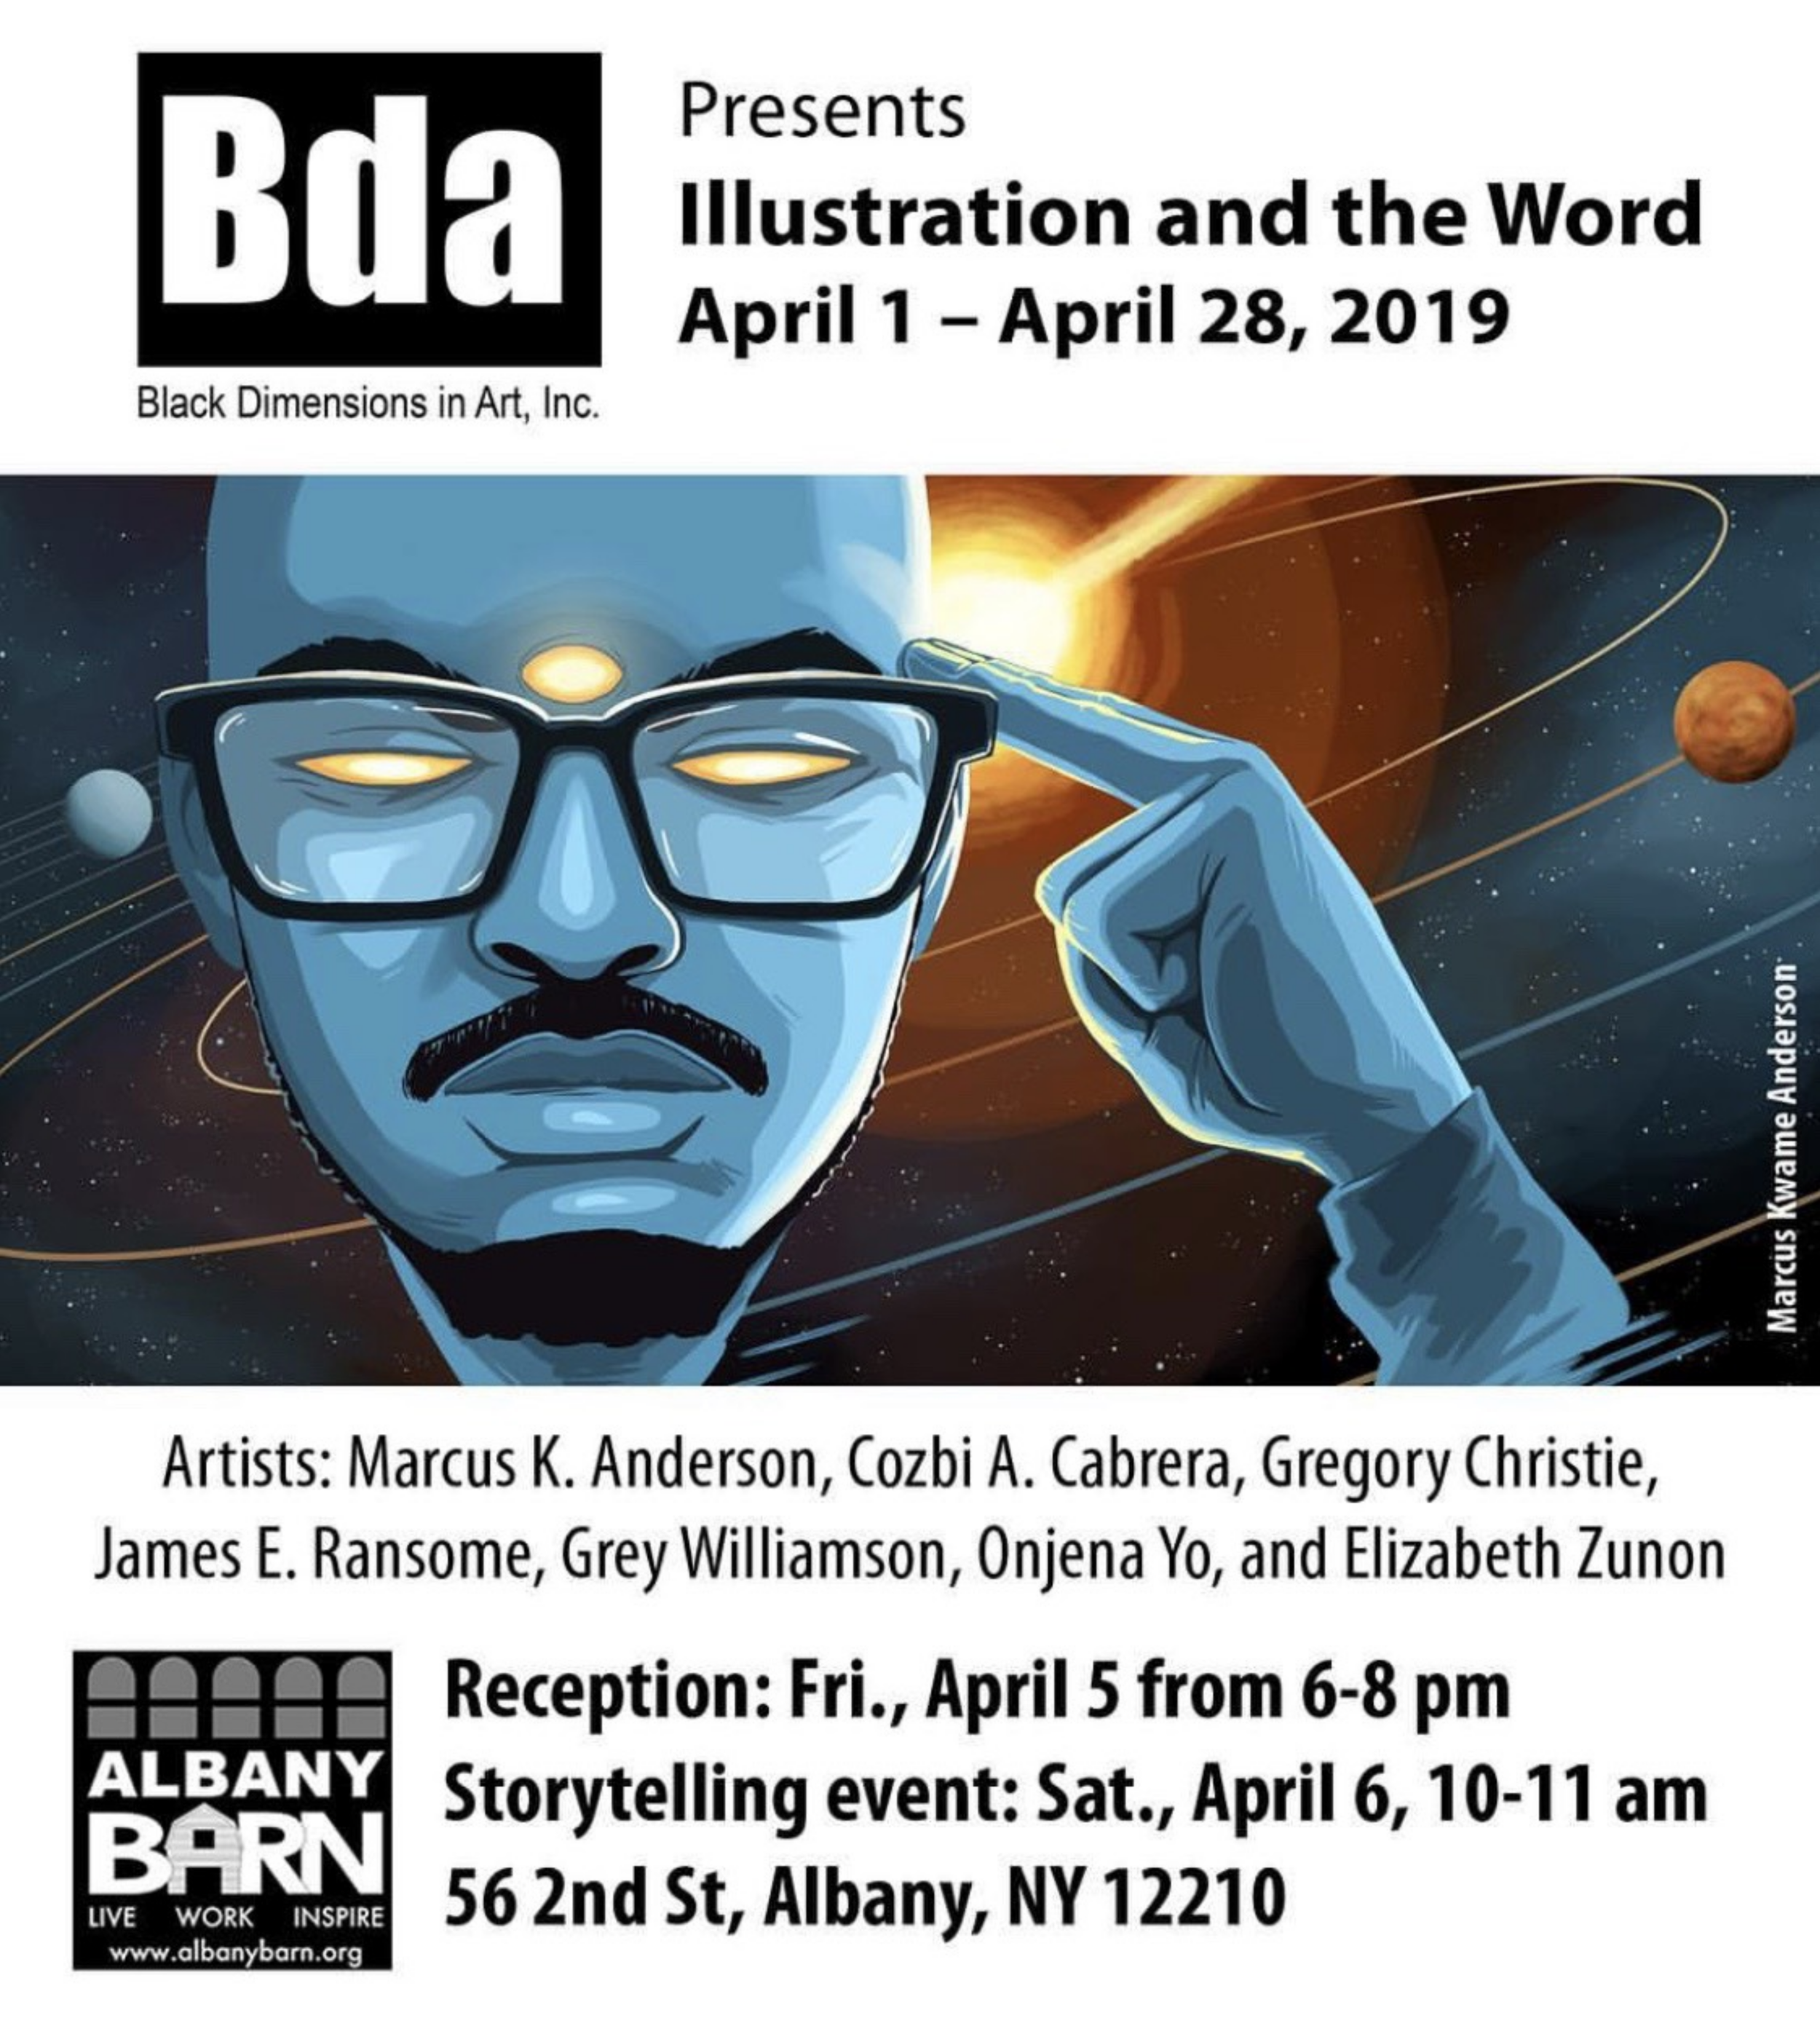 BDA_Exhibit_Illustration_and_the_Word_Albany_Barn_April_2019_2.png